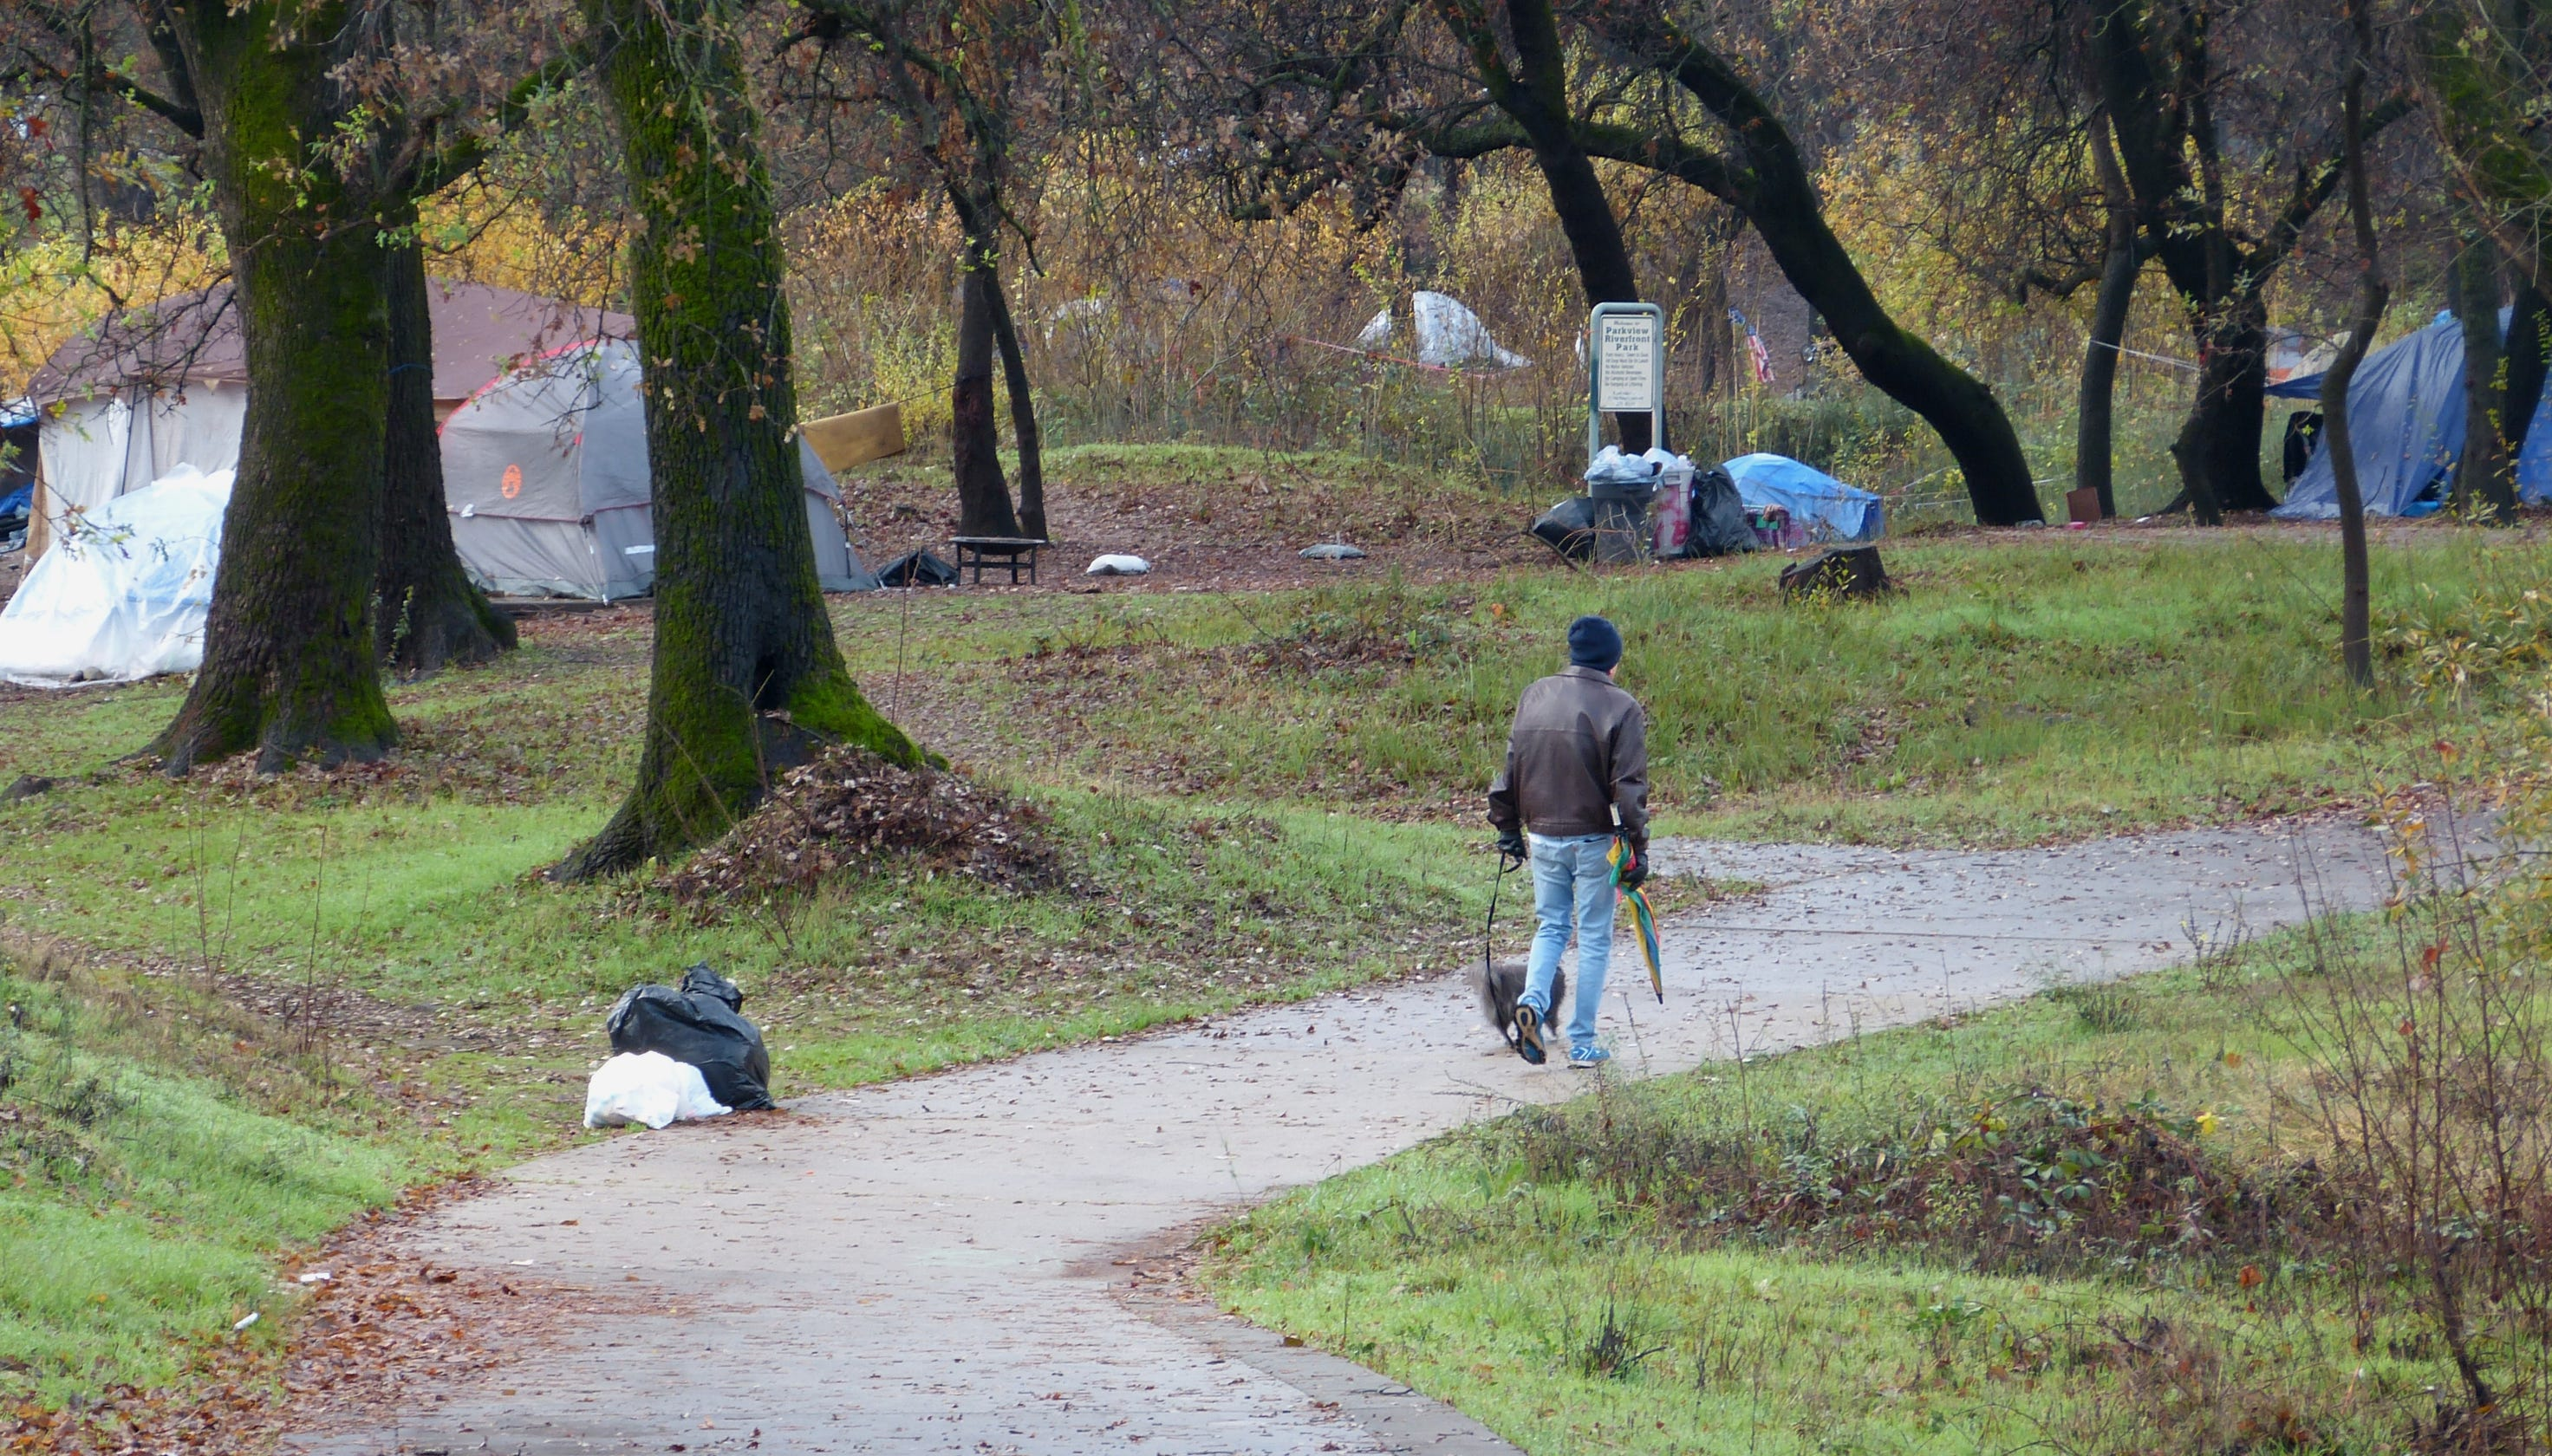 Redding's no-camping laws may change to discourage homeless tents